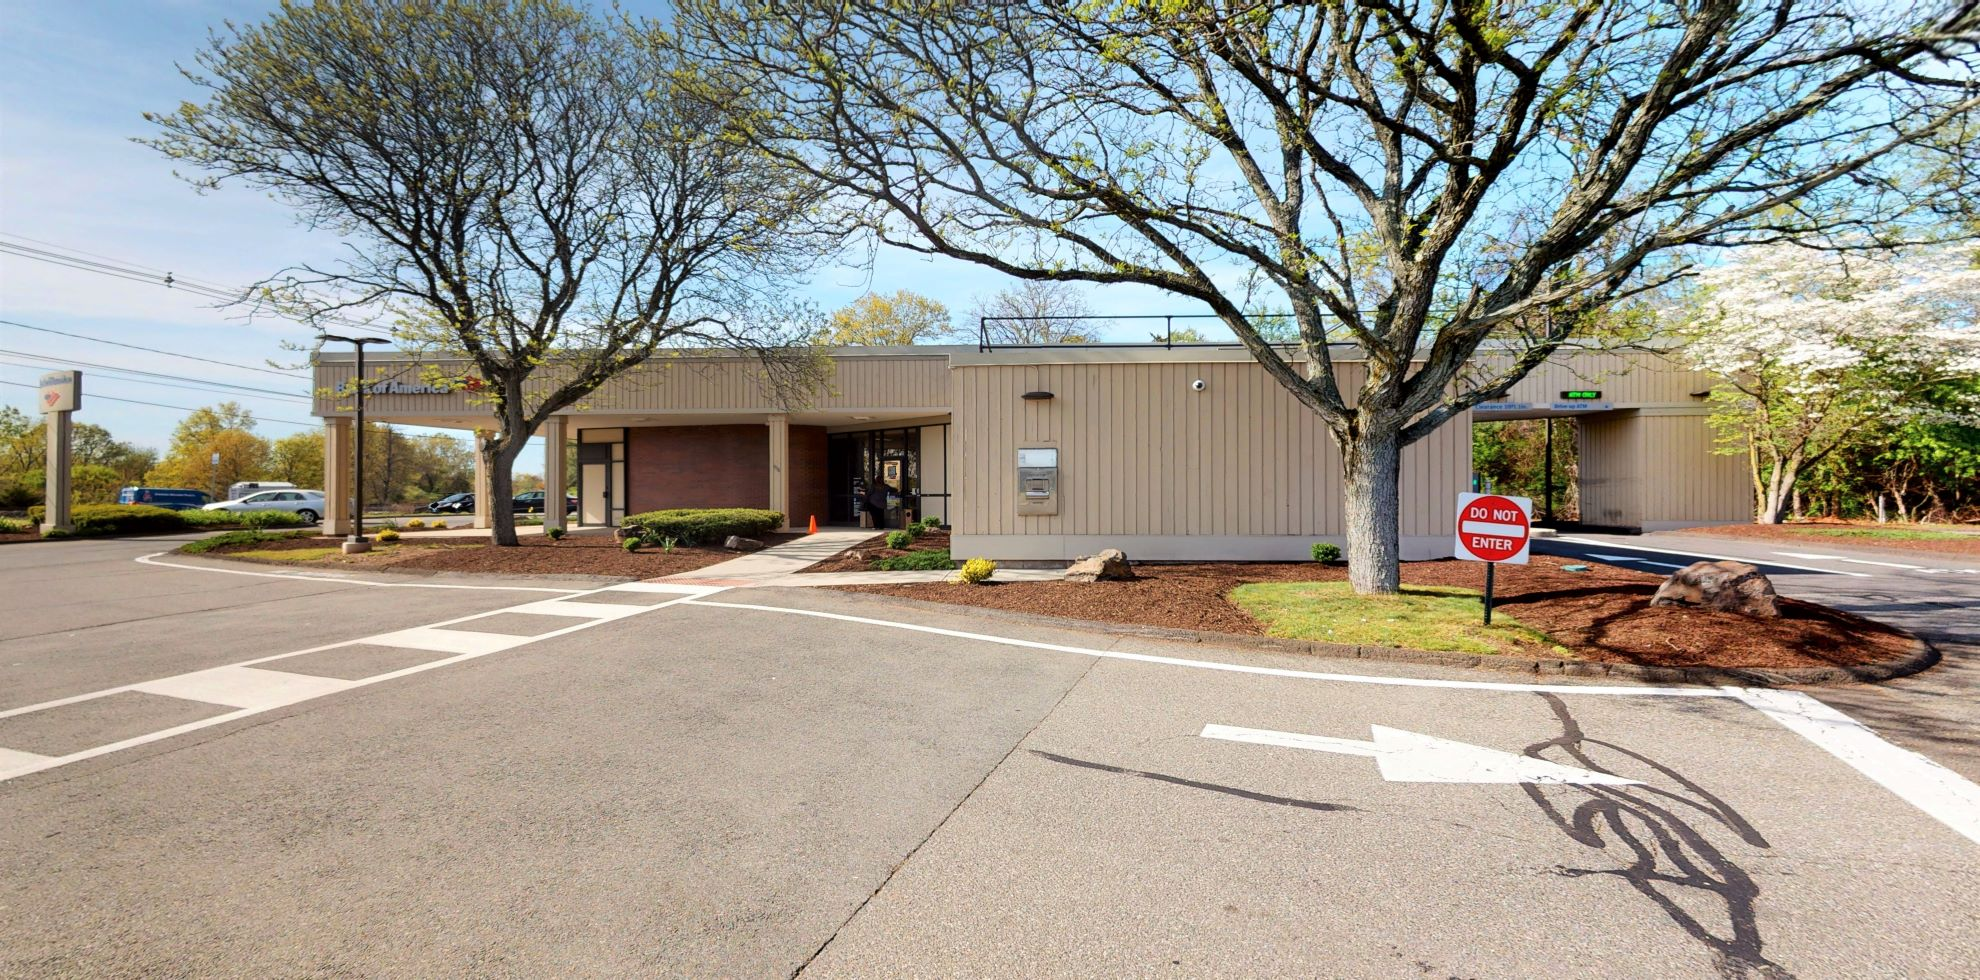 Bank of America financial center with drive-thru ATM   938 N Colony Rd, Wallingford, CT 06492